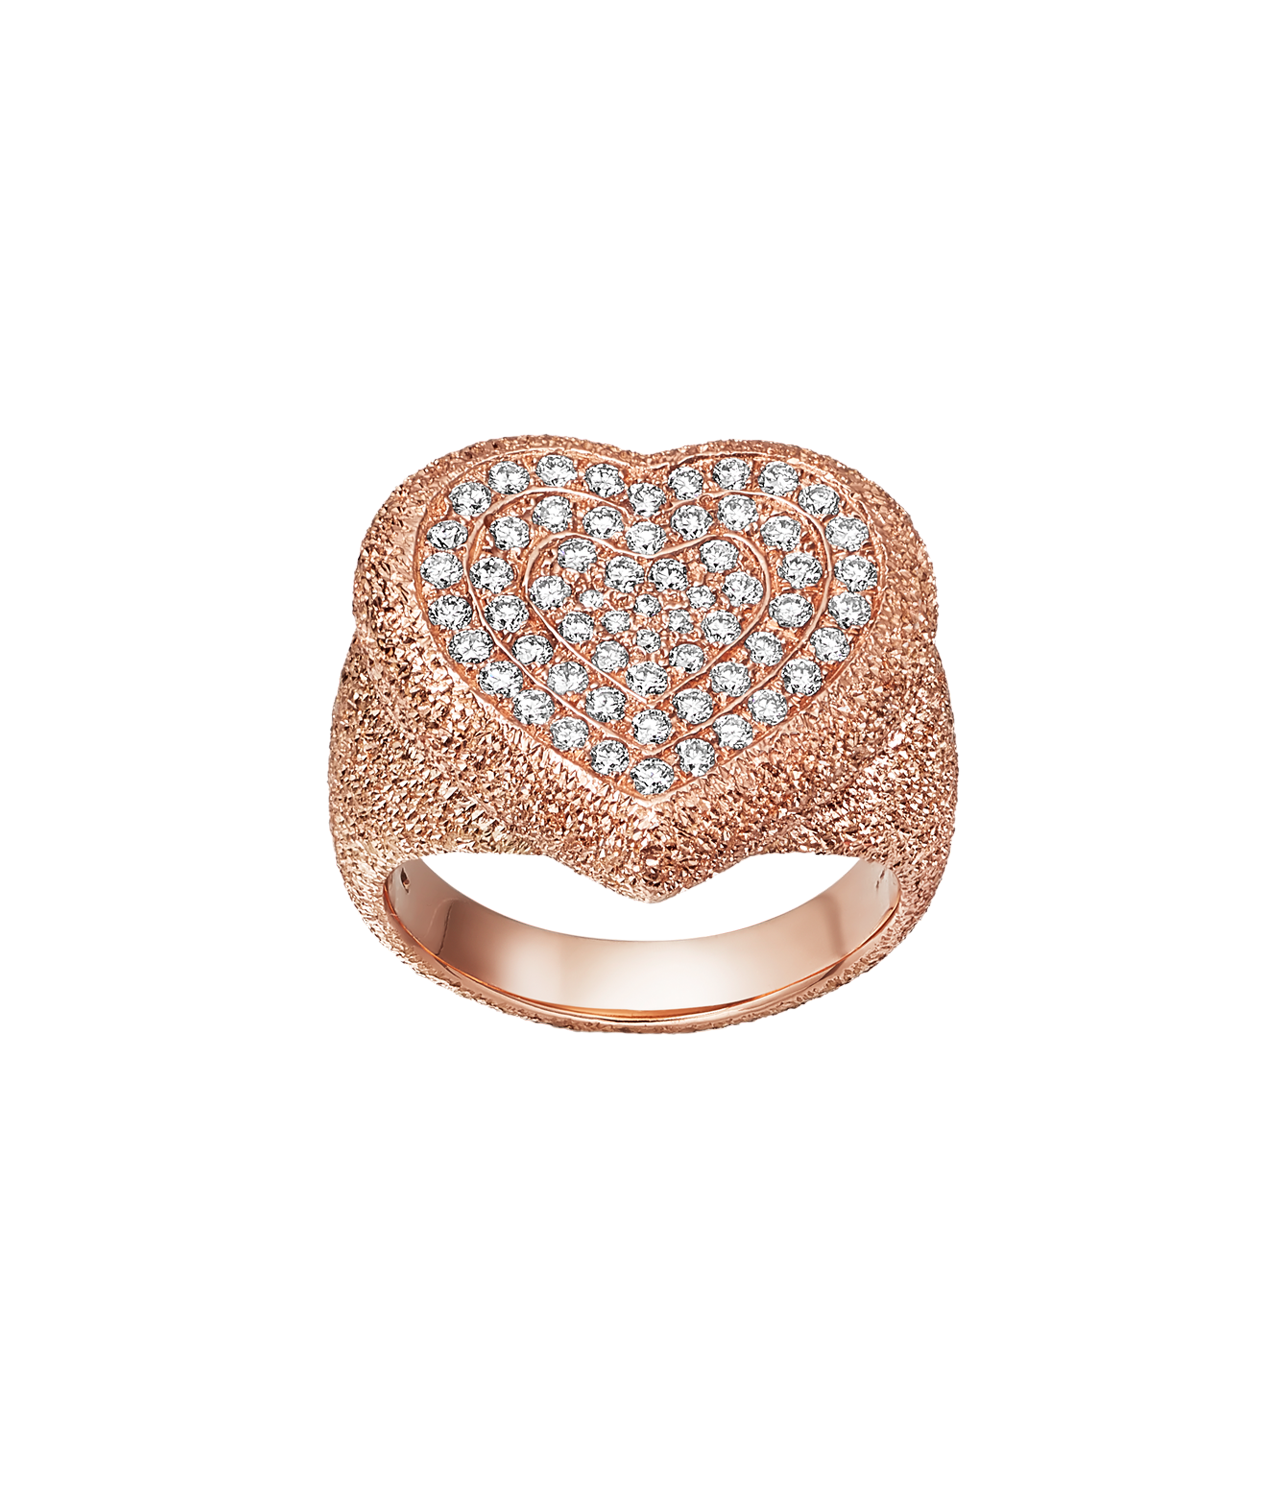 Carolina Bucci Pavé Cuore Ring with White Diamonds